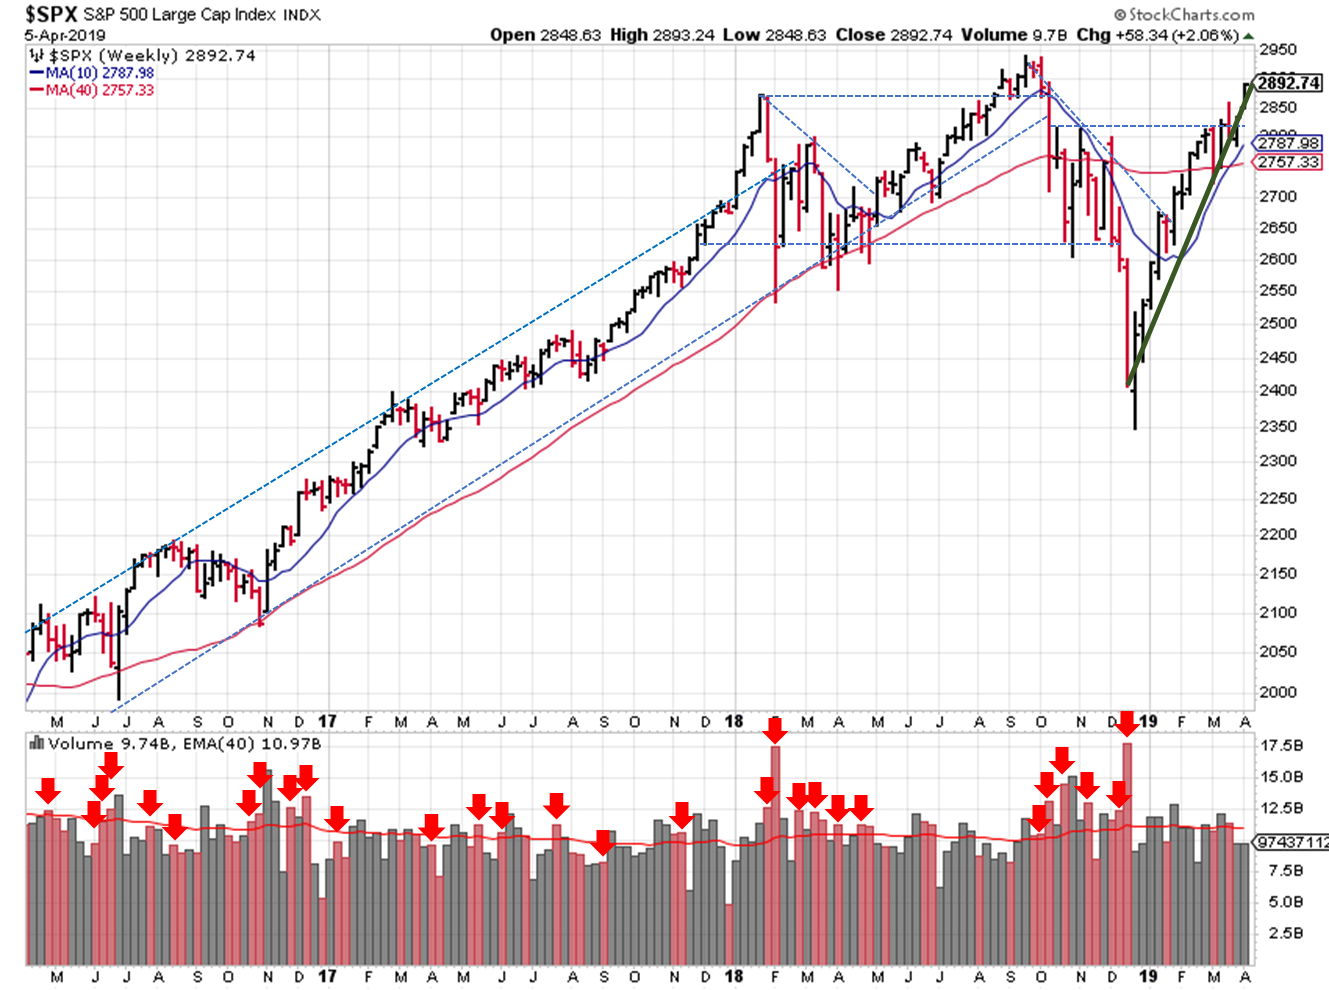 2019-04-07 - $SPX Trendline Analysis - Weekly